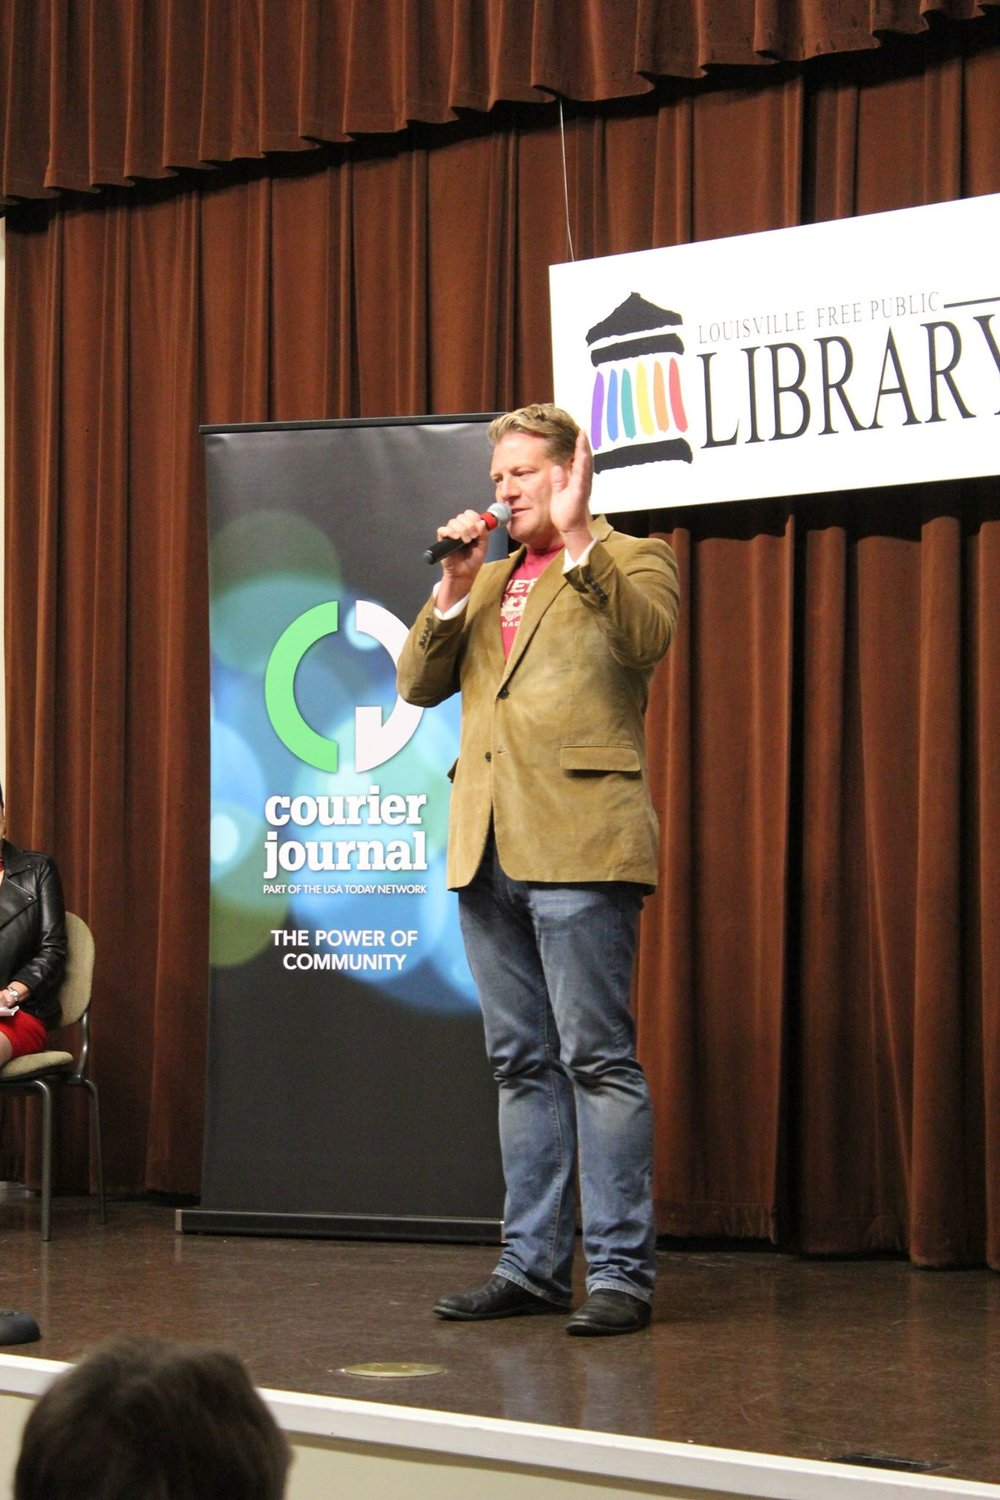 louisville Storytellers at the library